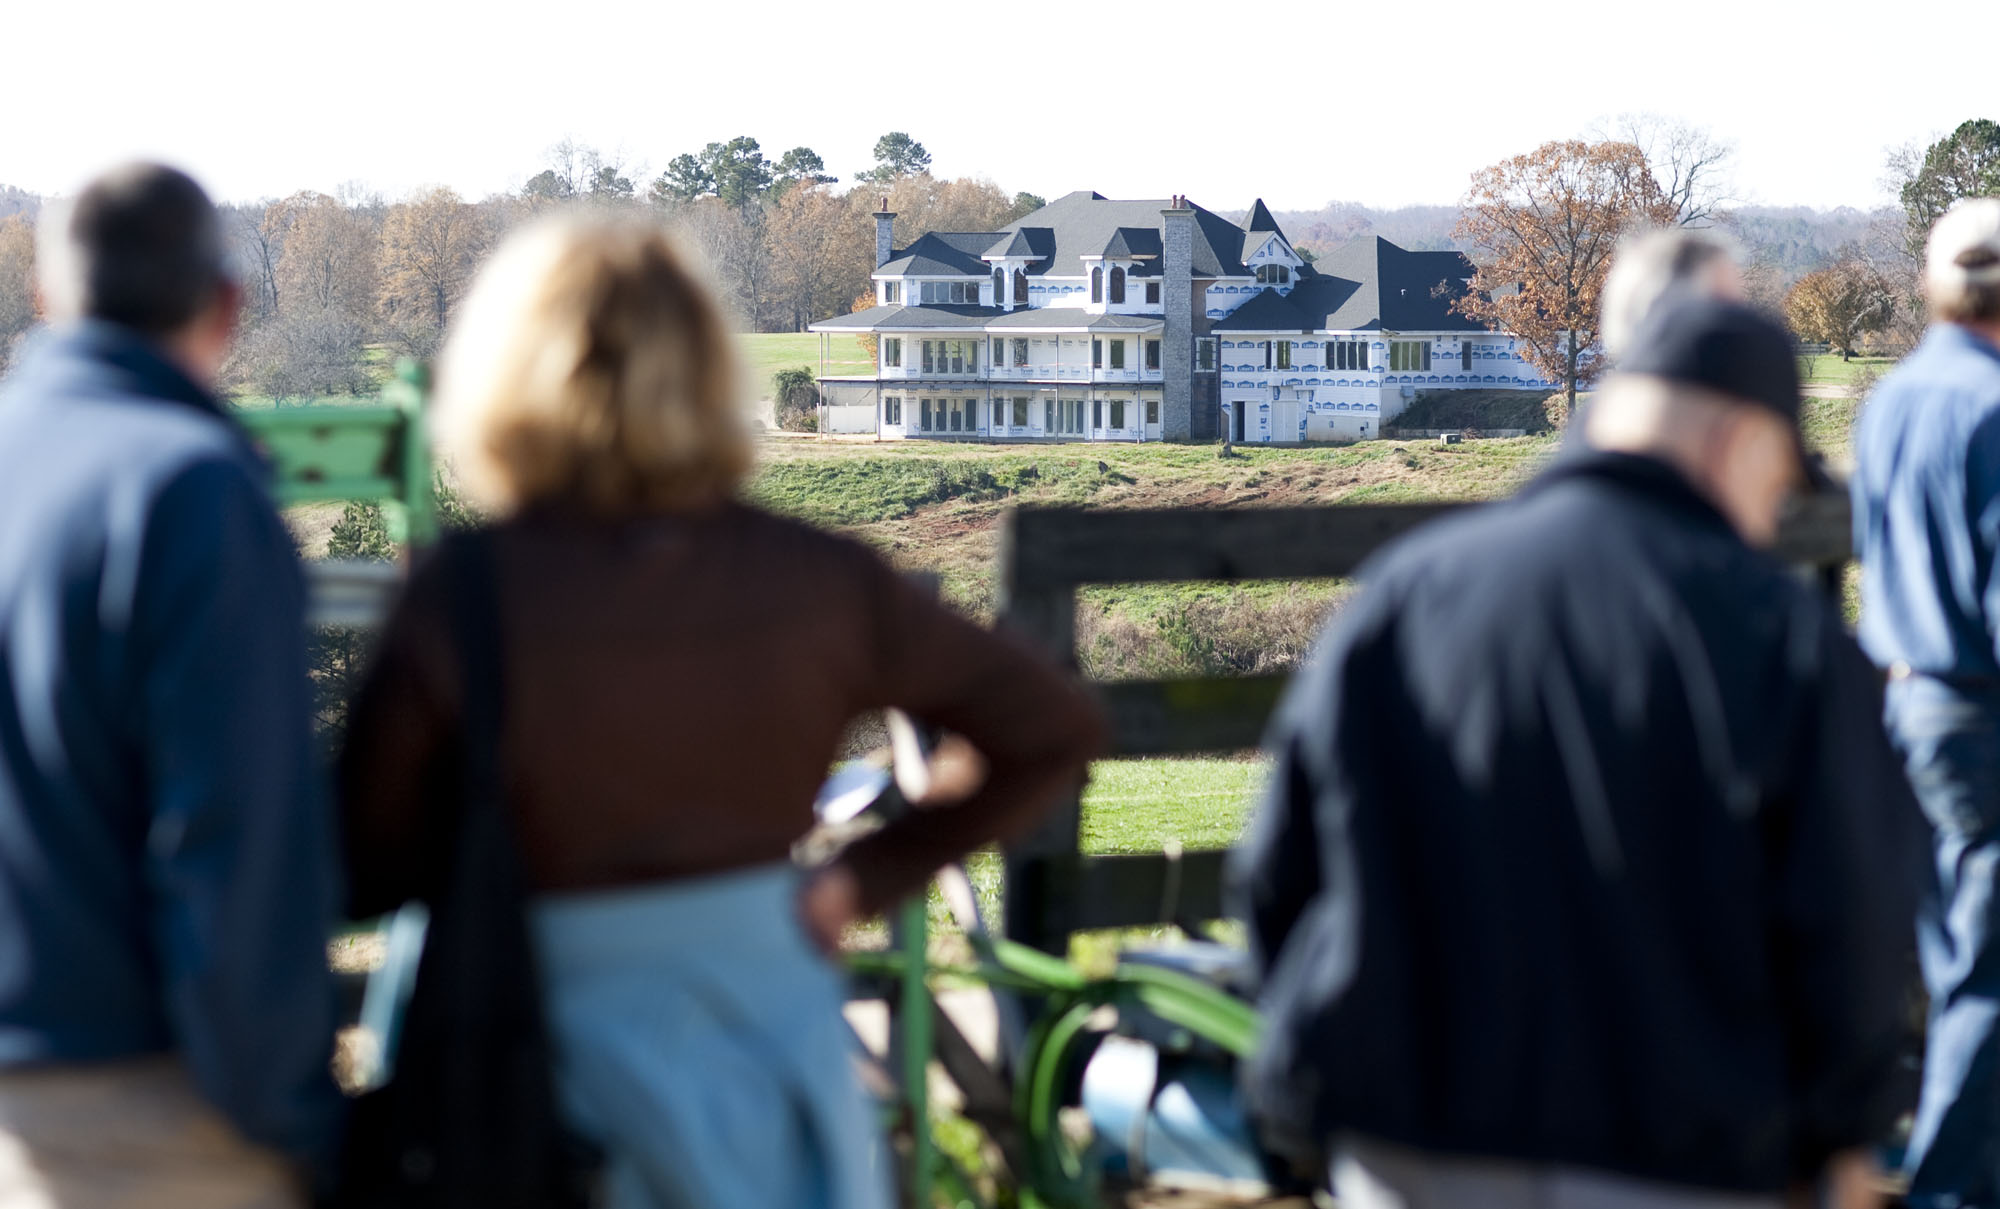 In this Nov. 20, 2009 file photo, auction attendees look at suspended NASCAR Sprint Cup driver Jeremy Mayfield's home, under renovation, during a public auction at Mayfield's Catawba, N.C. property. The million-dollar North Carolina home once owned by Mayfield before he was kicked off the land is scheduled to be burned to the ground as part of a fire training exercise. The Catawba County Fire Marshal's Office says the 12,000-square-foot unfinished house will be burned down on Saturday, Dec. 14, 2013